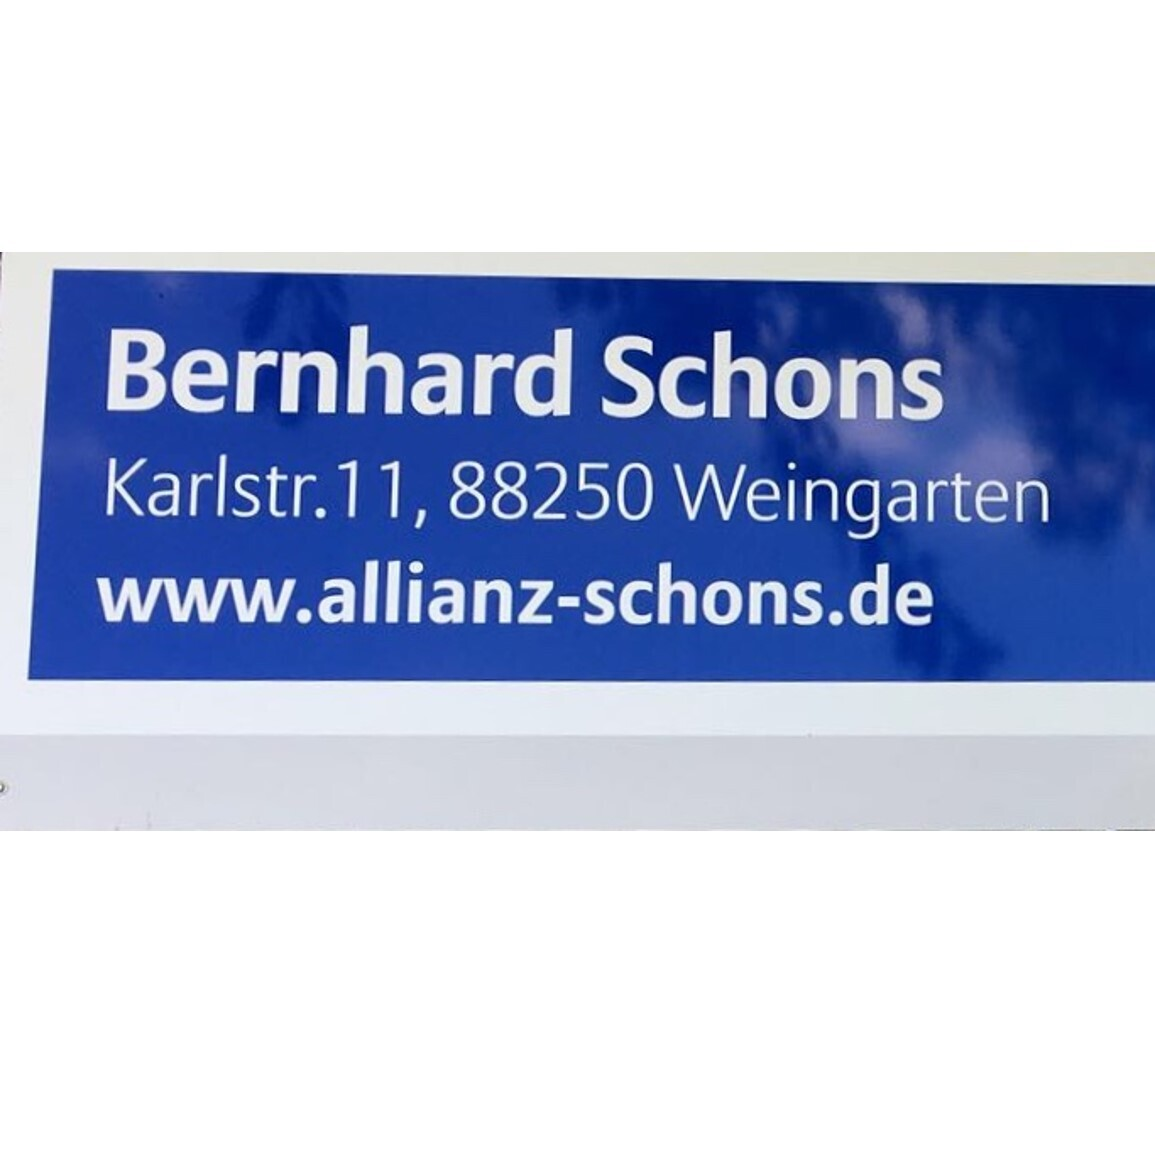 Schorns%20allianz